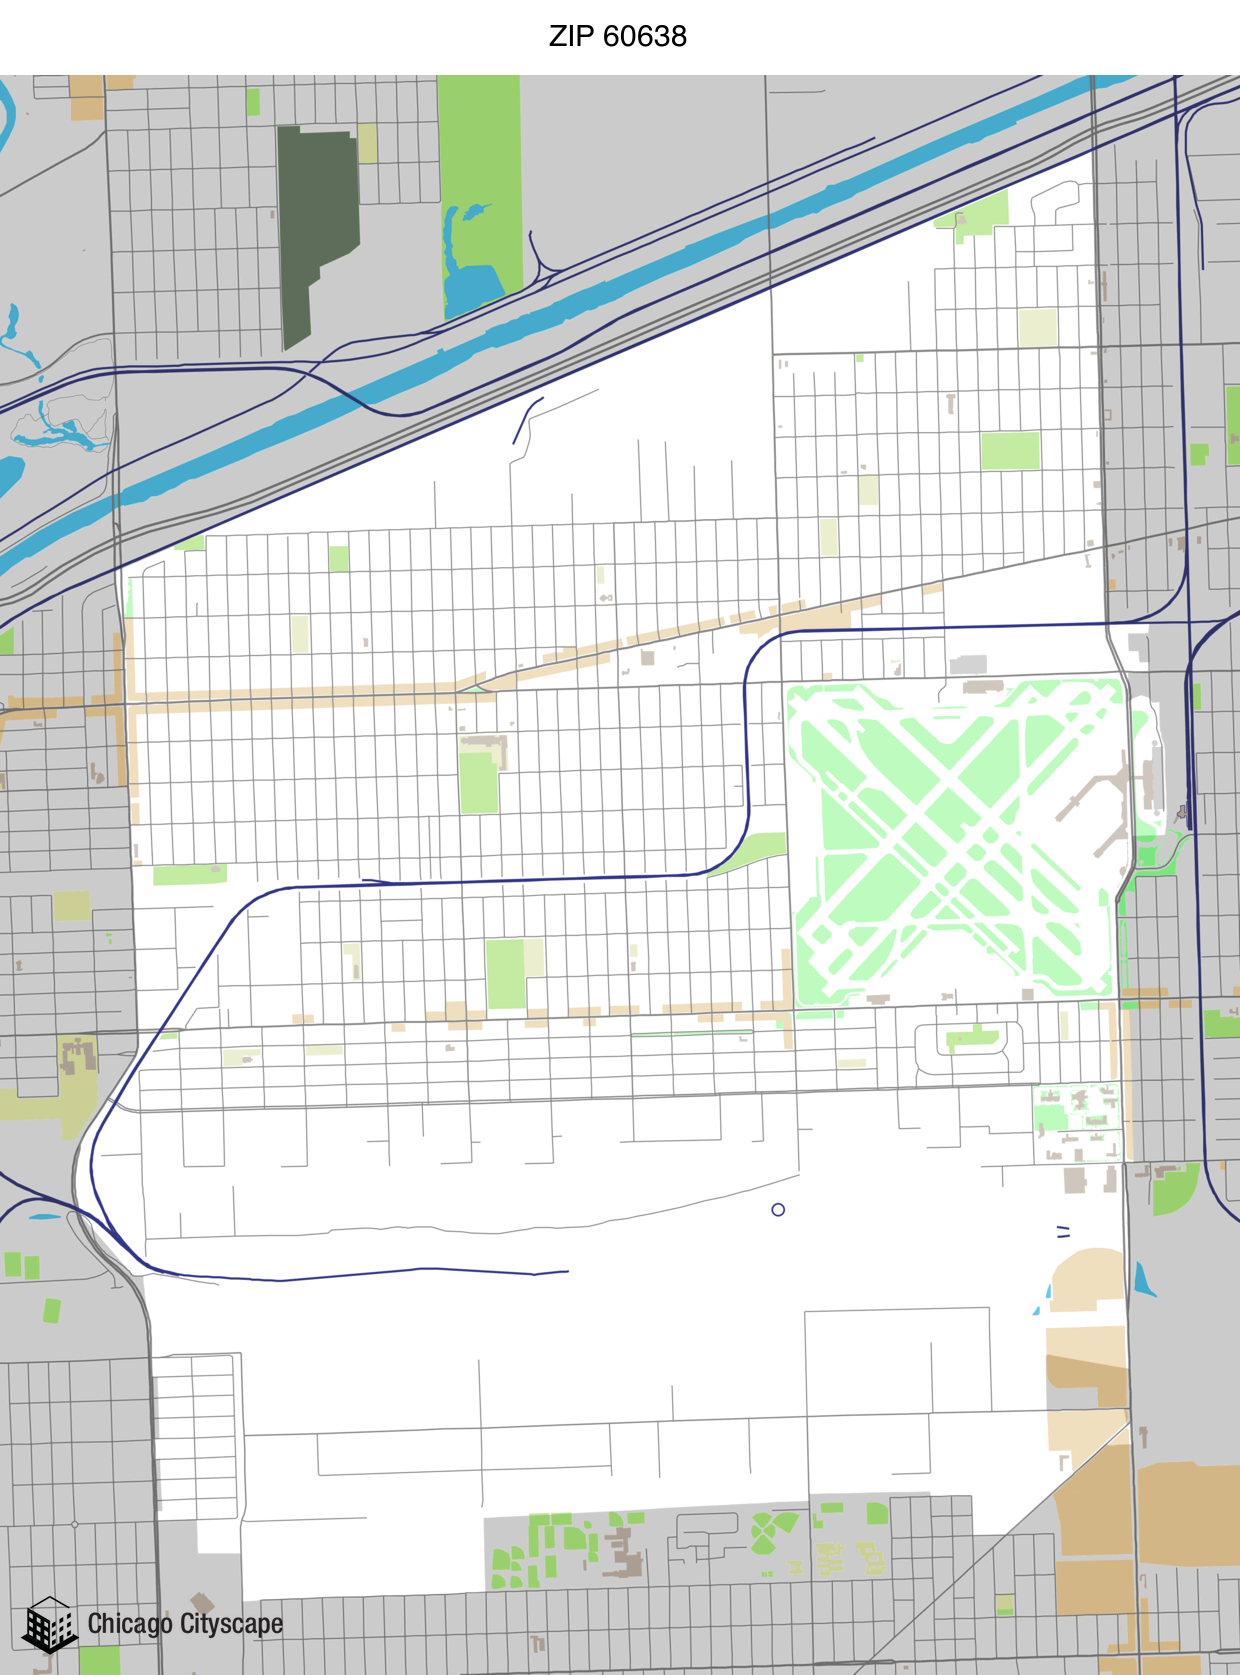 Map Of Building Projects Properties And Businesses In ZIP Code - Chicago zip code map